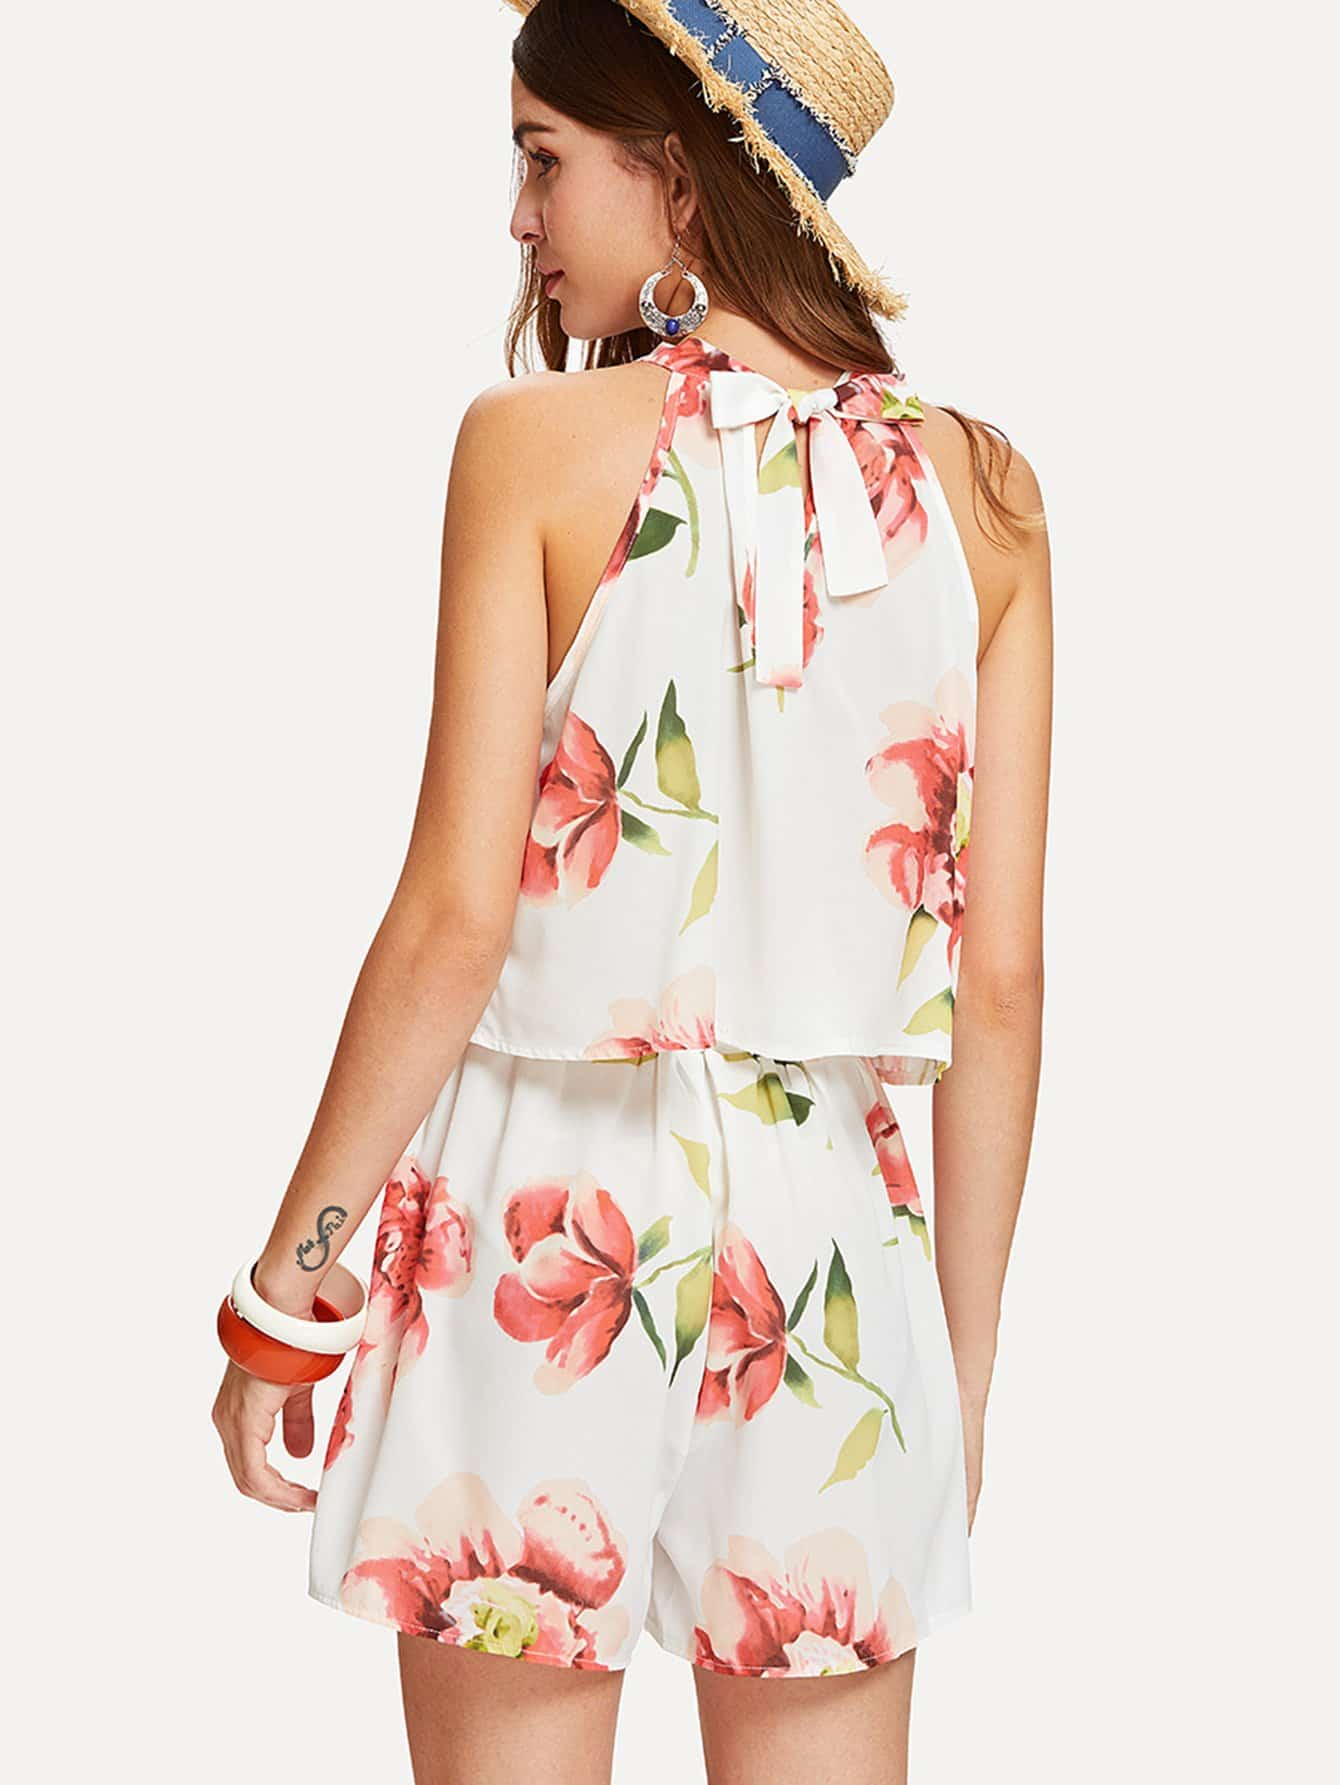 Florals Halter Top With Box Pleated Shorts allover florals bow tie detail frill top with shorts